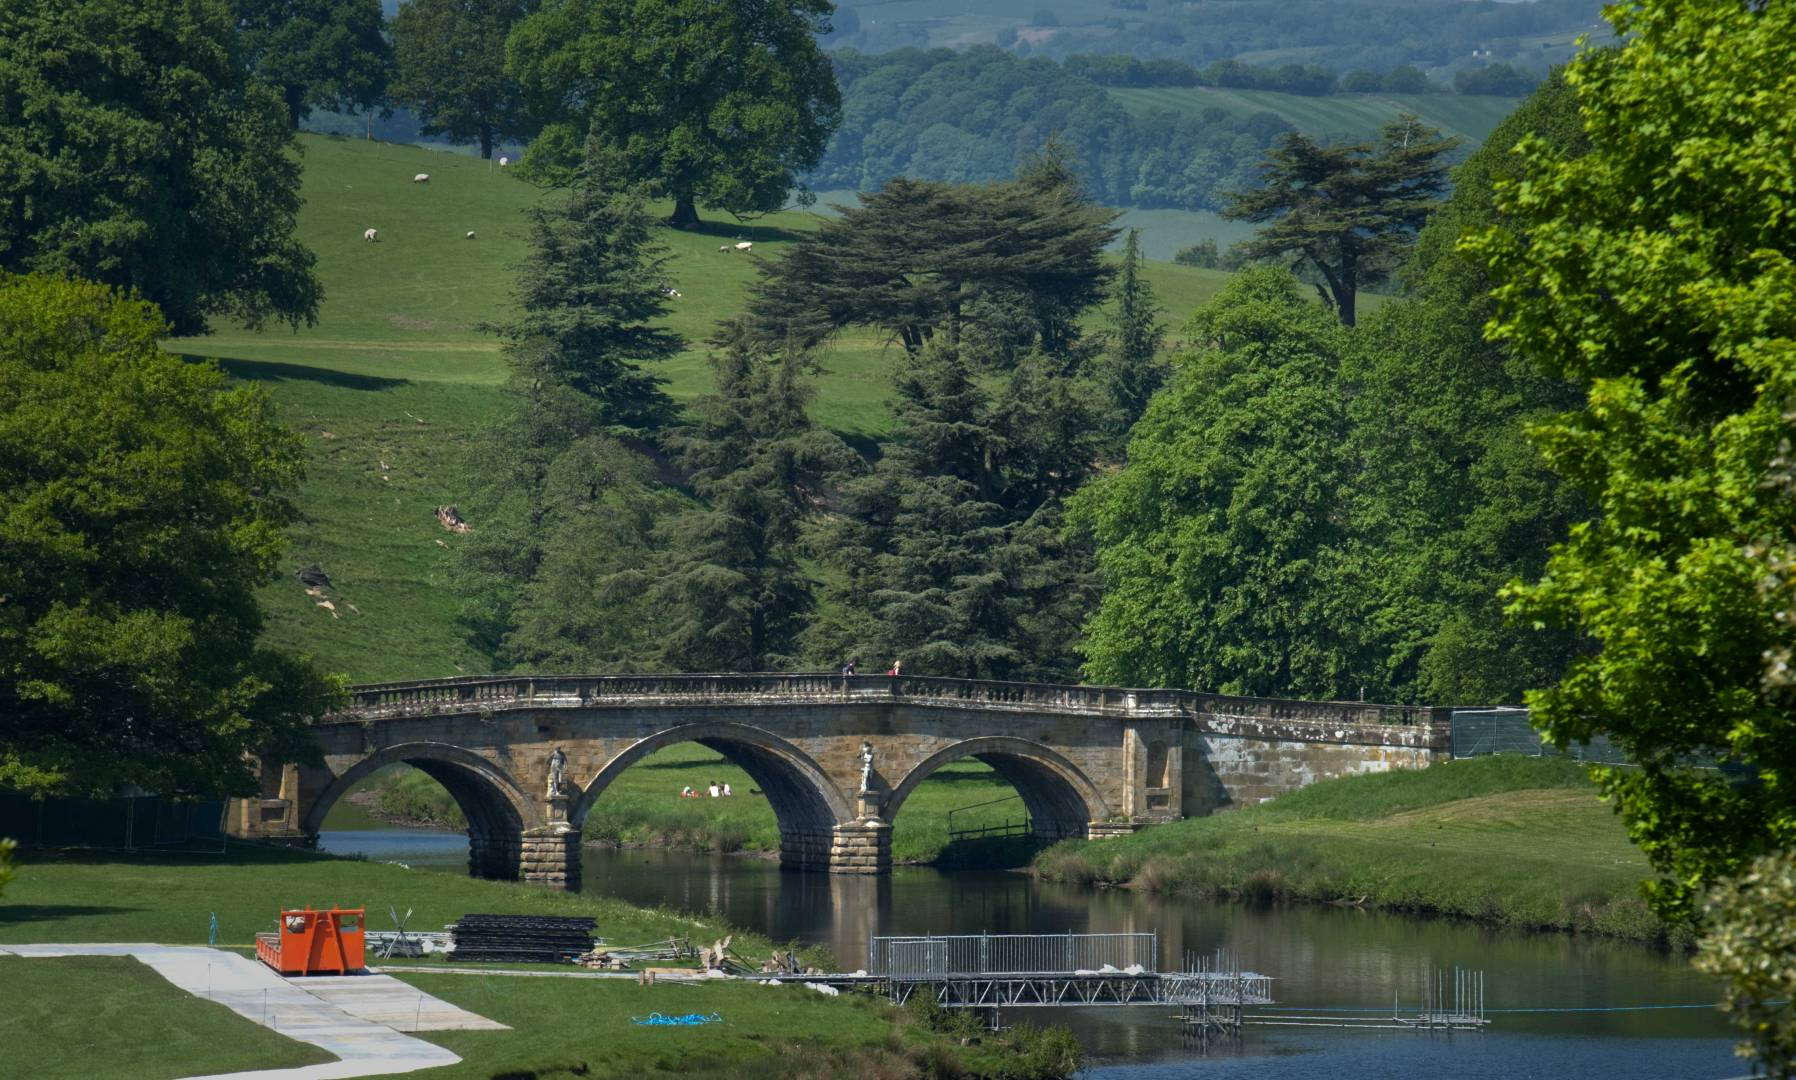 Chatsworth House - Approach Bridge, 22nd May 2018. Fujifilm XT2 - with 50-140mm F2.8 at 140mm, 1/480s, f/9 ISO 200